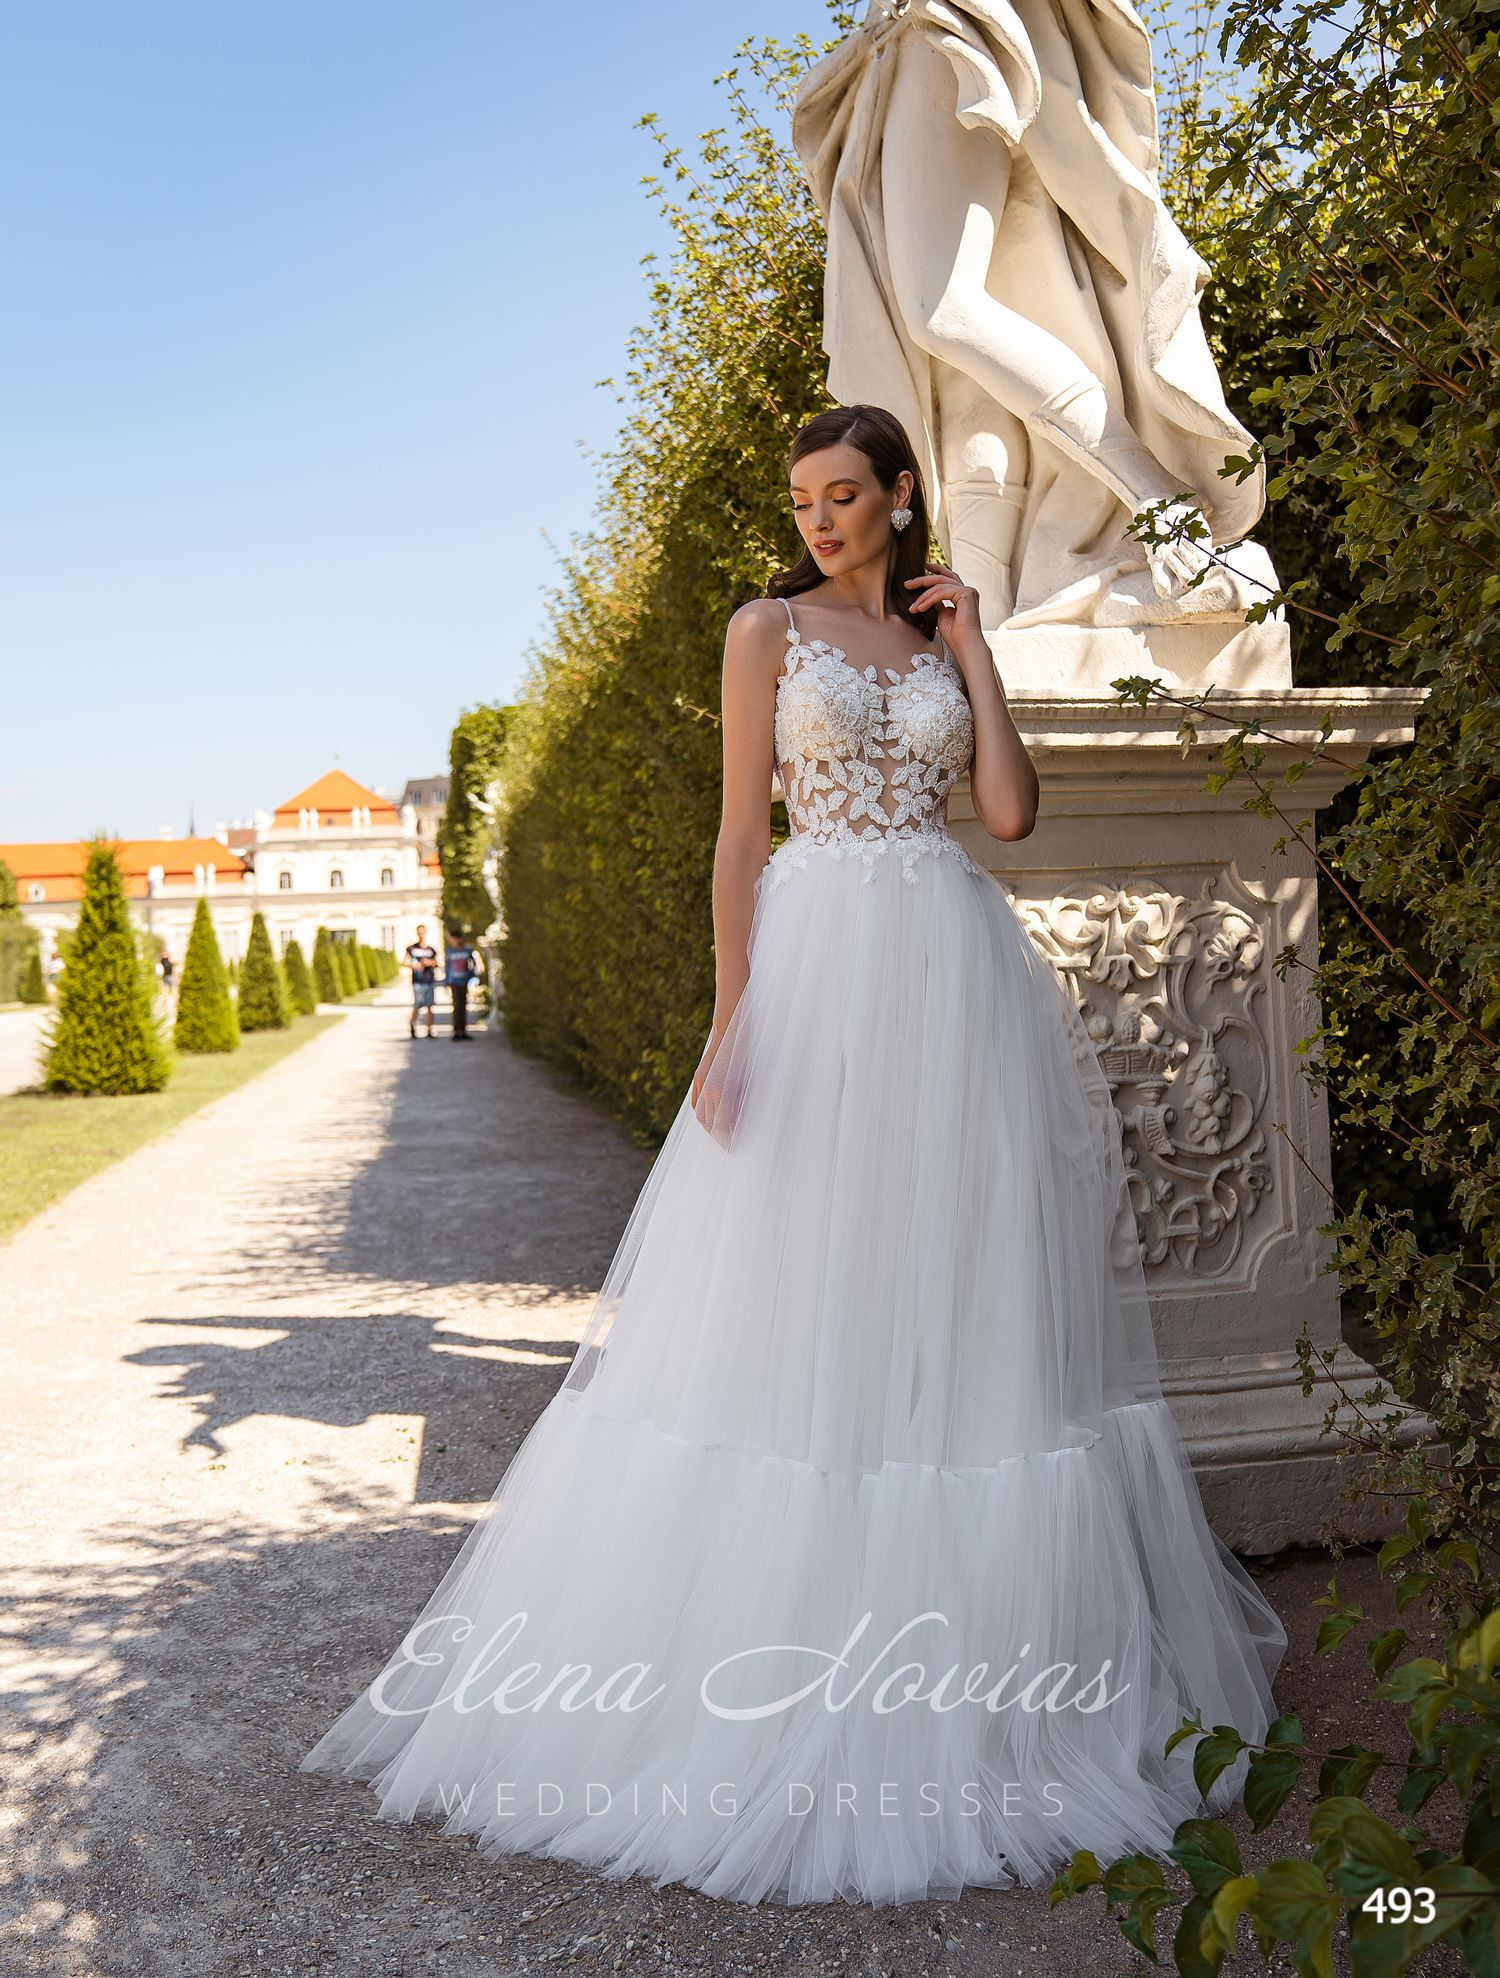 Wedding dresses 493 1